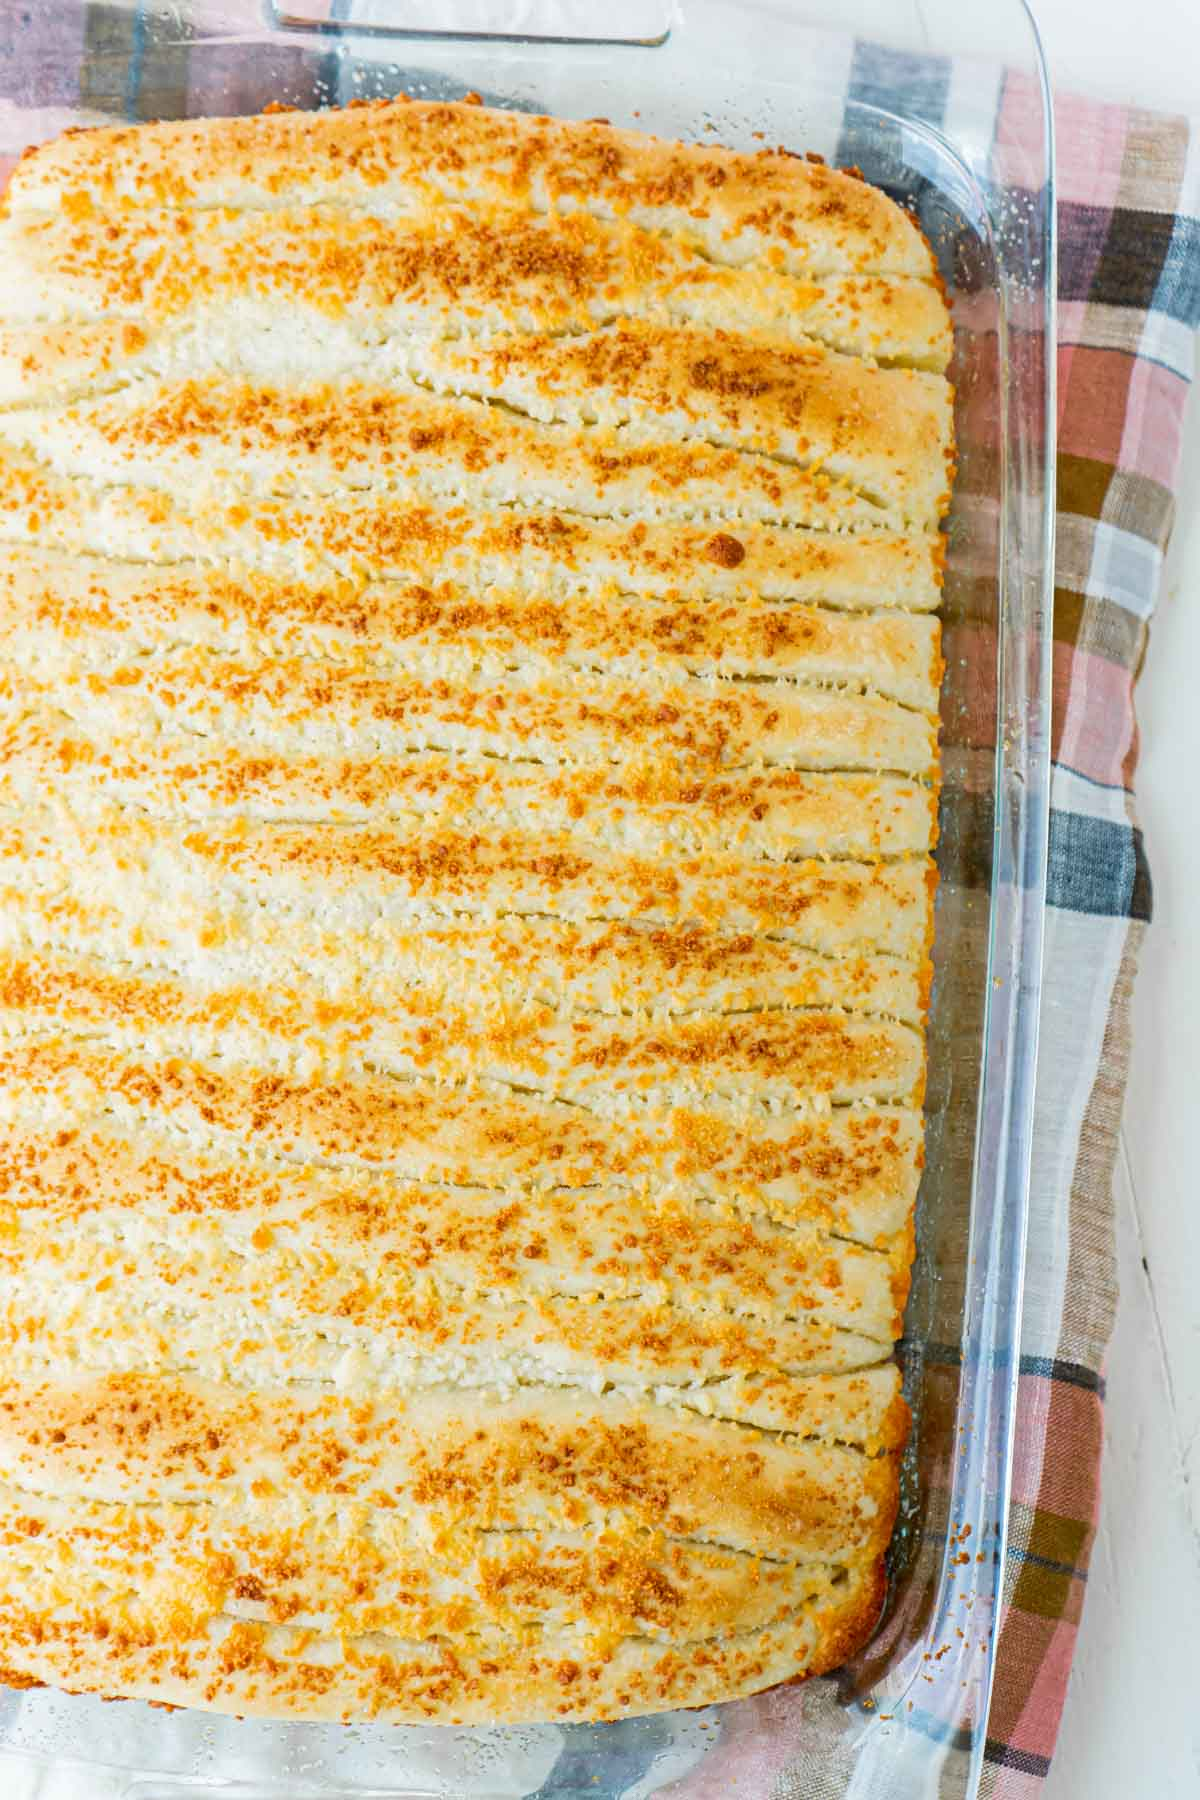 Baked garlic breadsticks in a glass baking dish on a pink and blue napkin